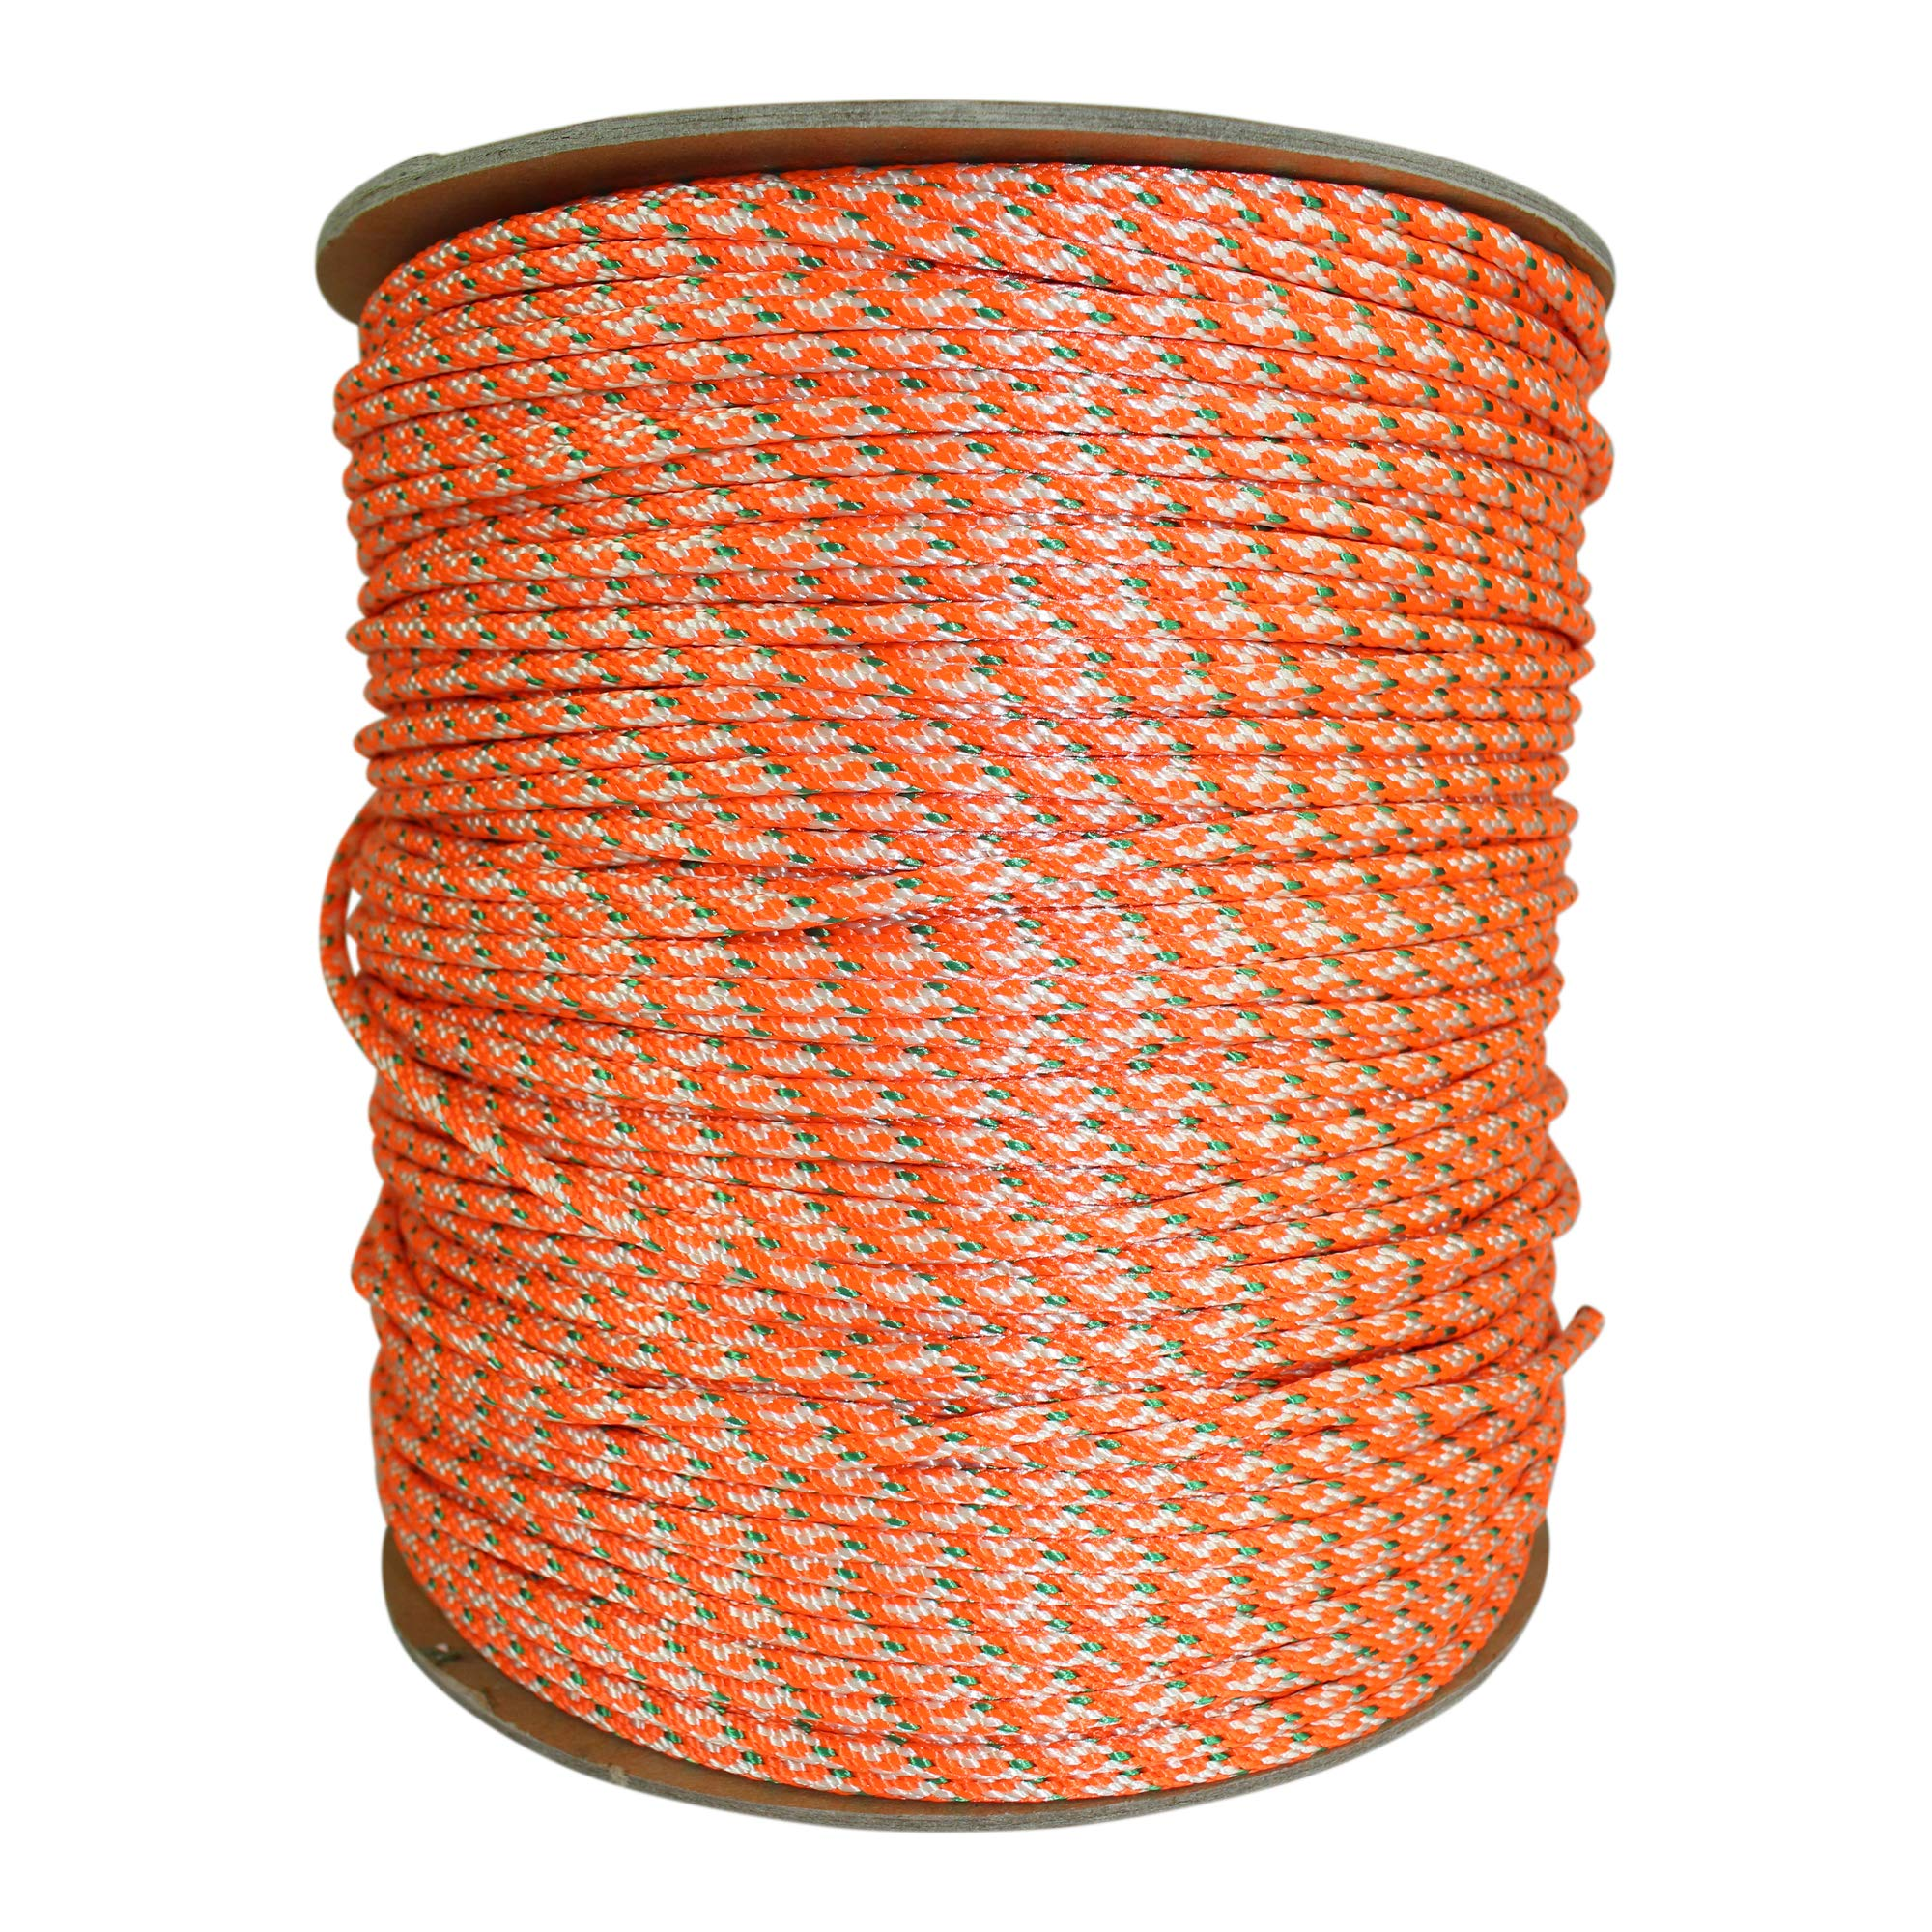 Dacron Polyester Pull Cord (#4) - SGT KNOTS - Solid Braid Rope - Small Engine Starter Rope - Replacement Cord Rope for Lawn Mowers, Leaf Blowers, Snowblowers, Generators, More (100 feet, Orange) by SGT KNOTS